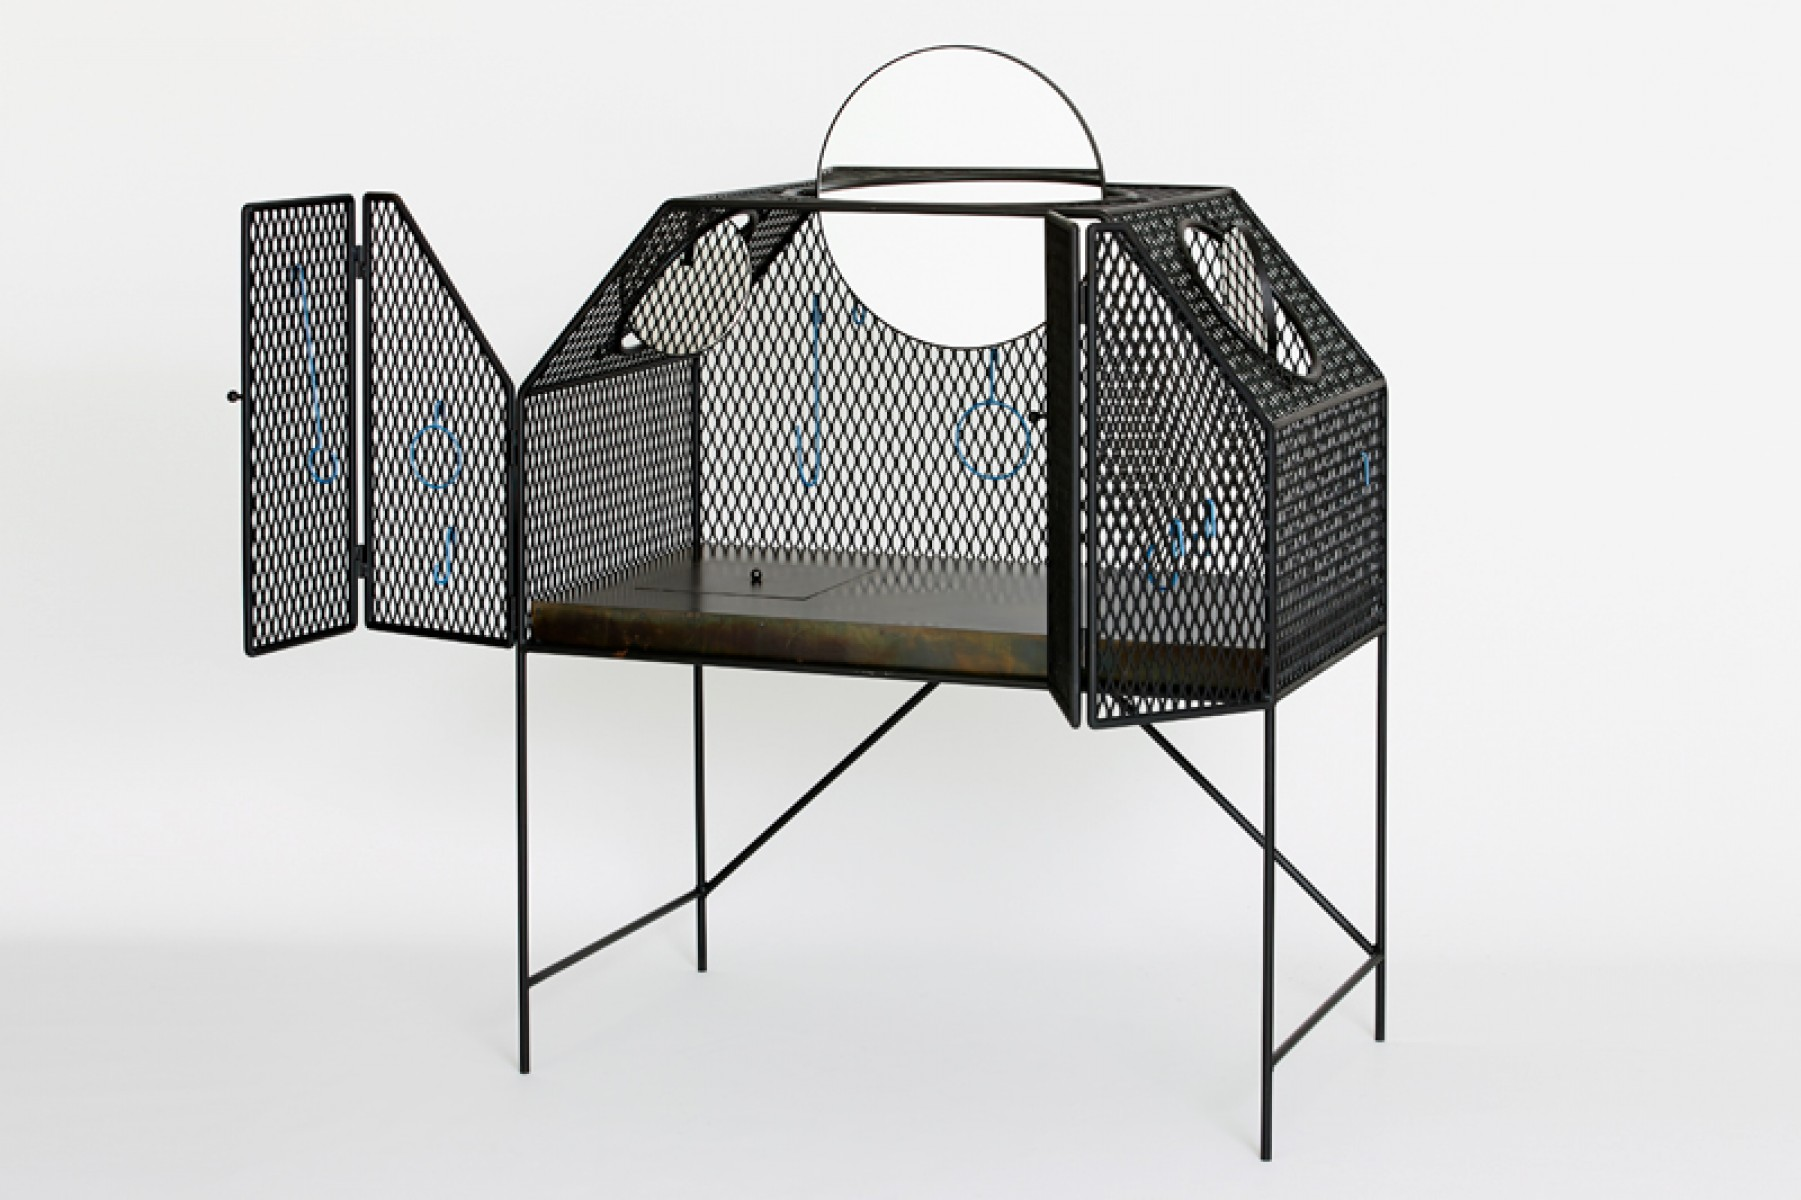 Faye Toogood,  Cage For Birds